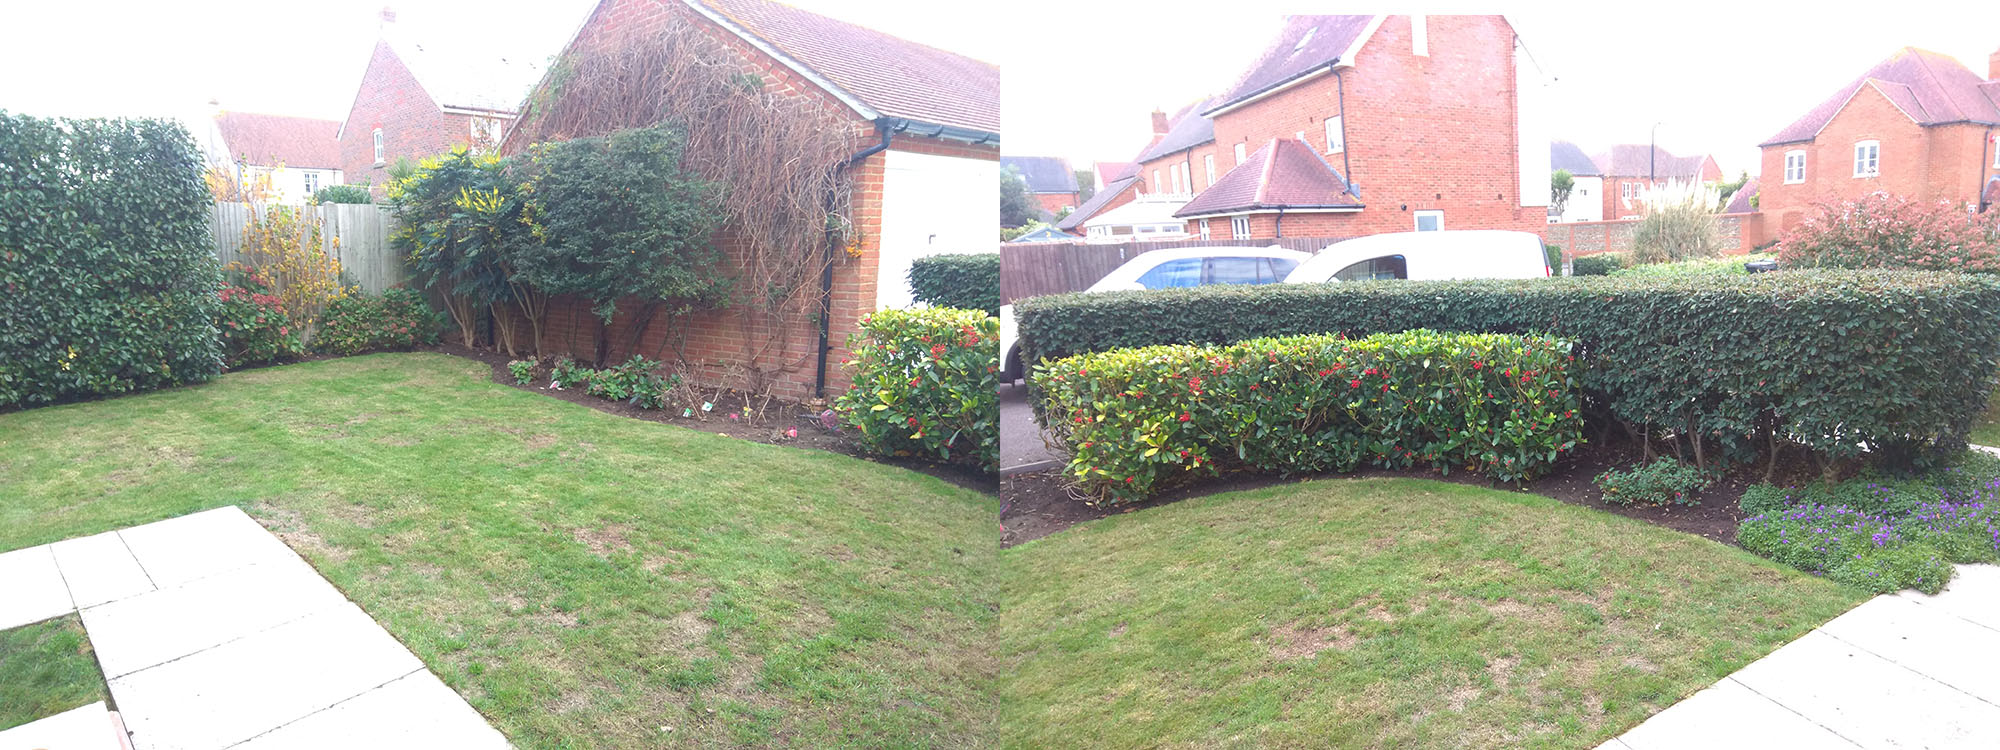 Image of garden after final tidying up before Winter